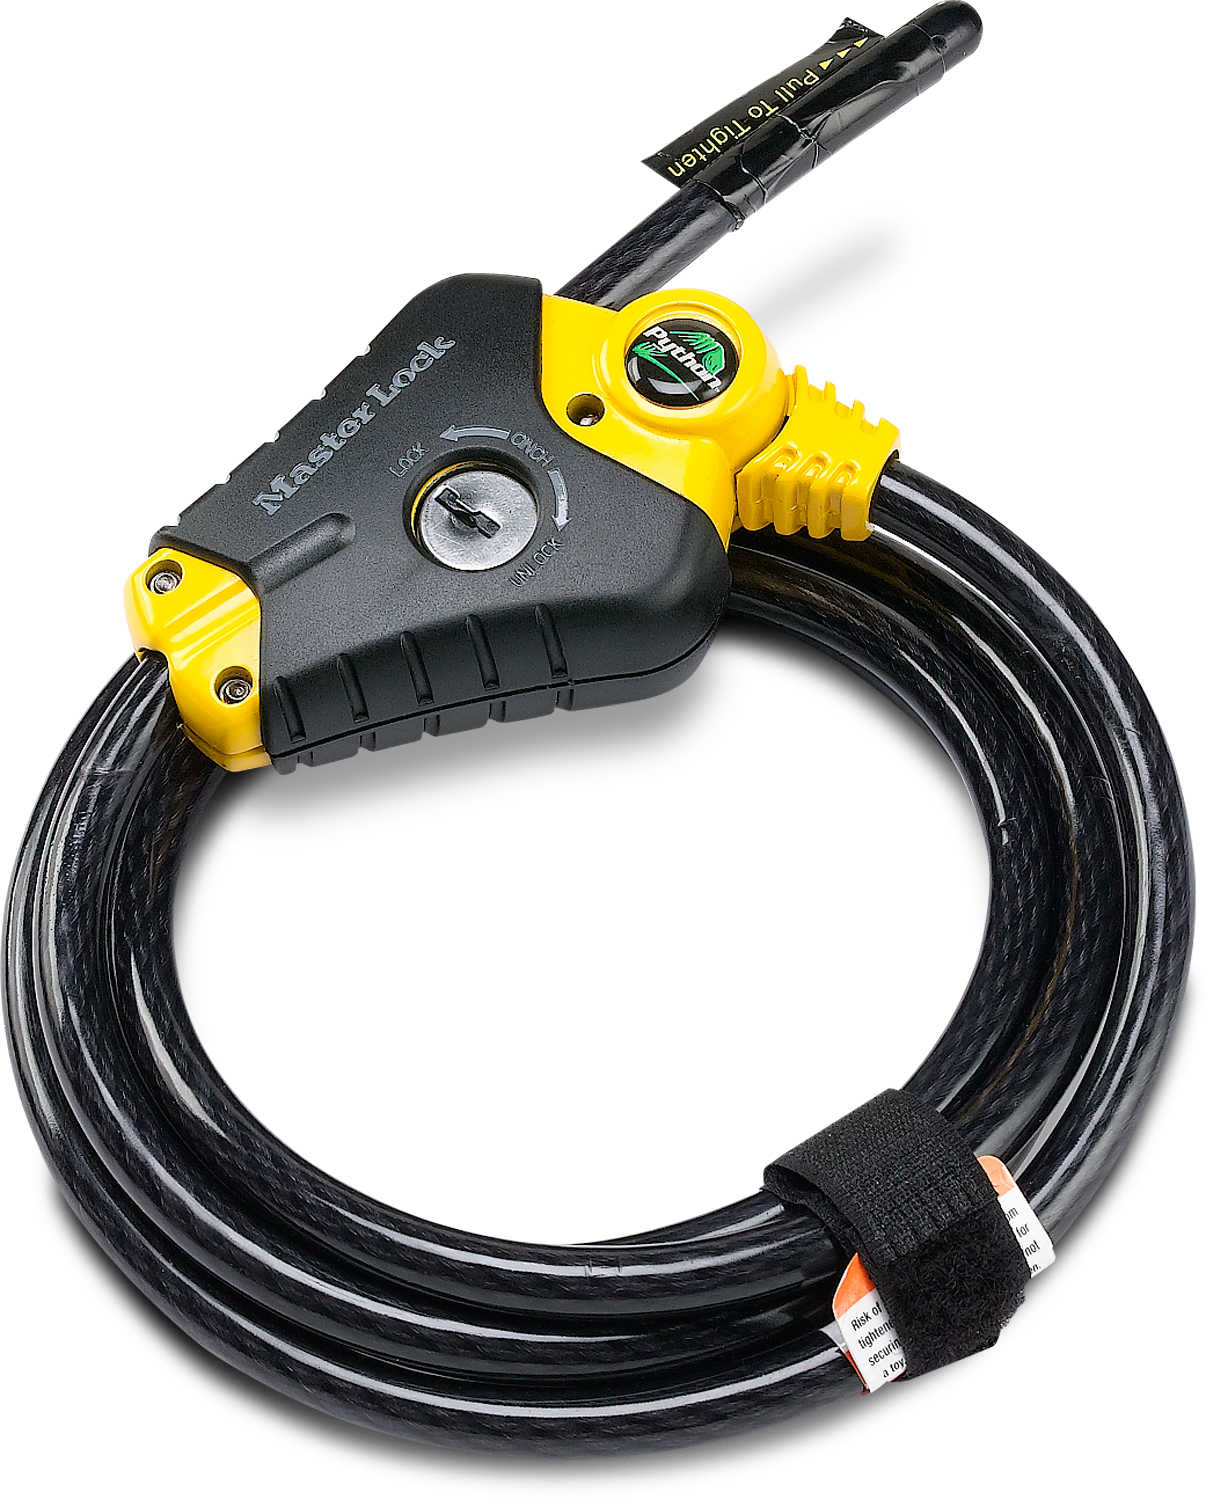 Master Lock Python Adjustable Locking Cable Forestry Suppliers Inc